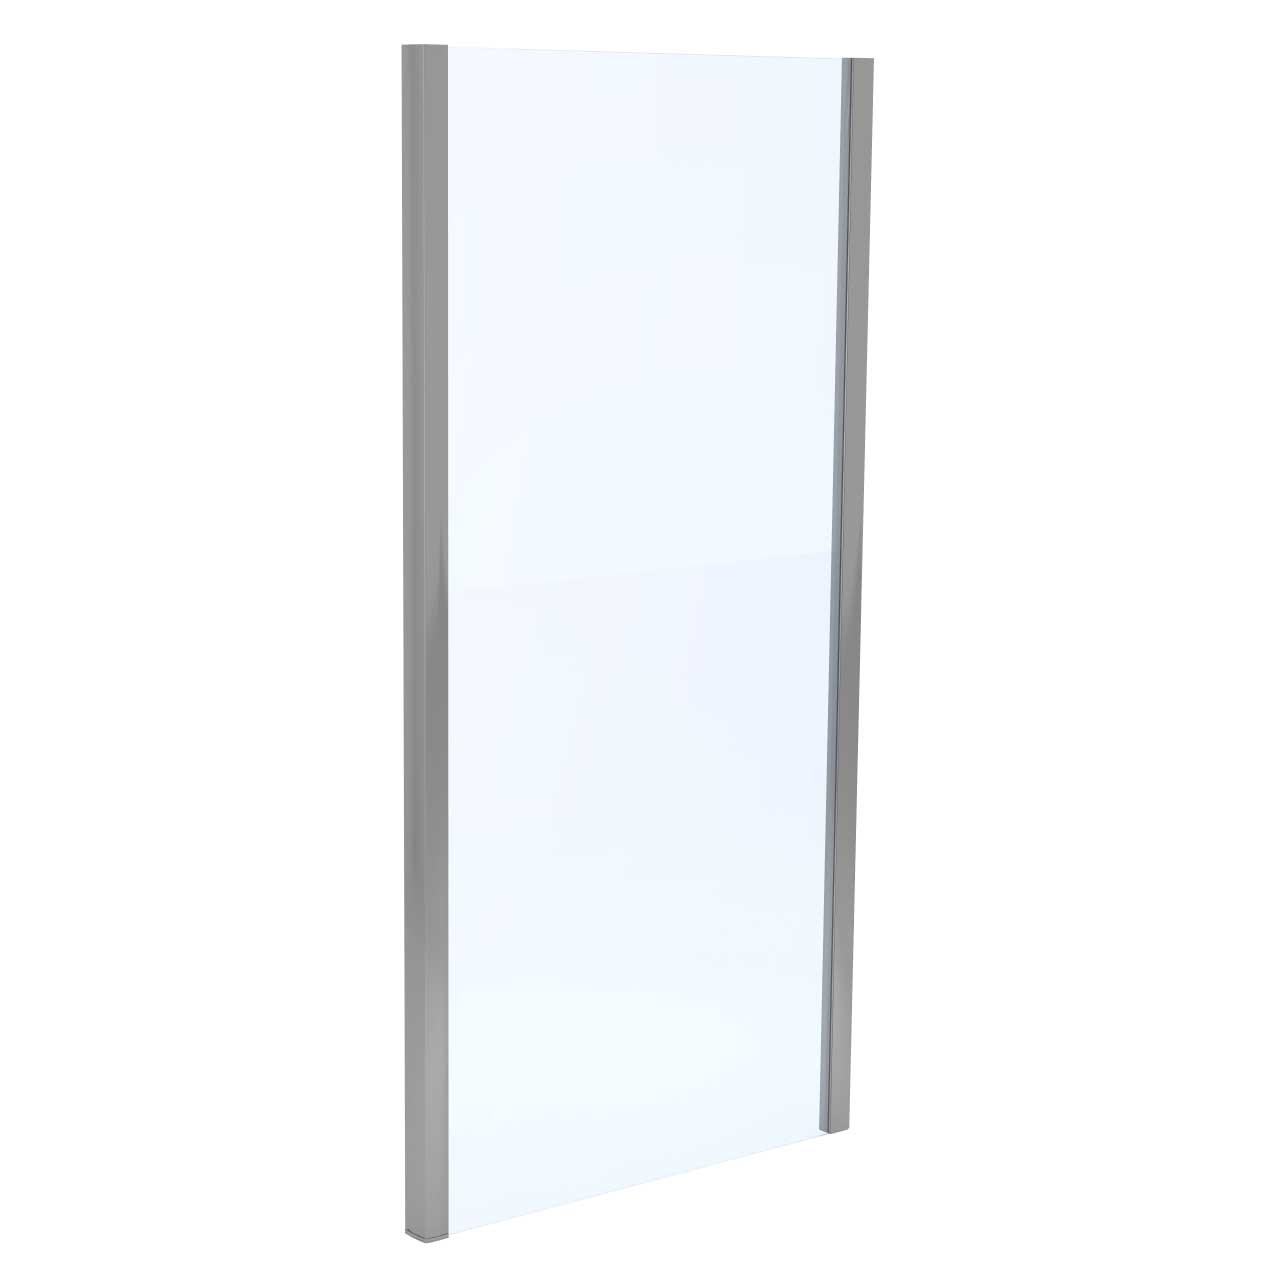 Series 8 1400 x 900 Sliding Door Enclosure